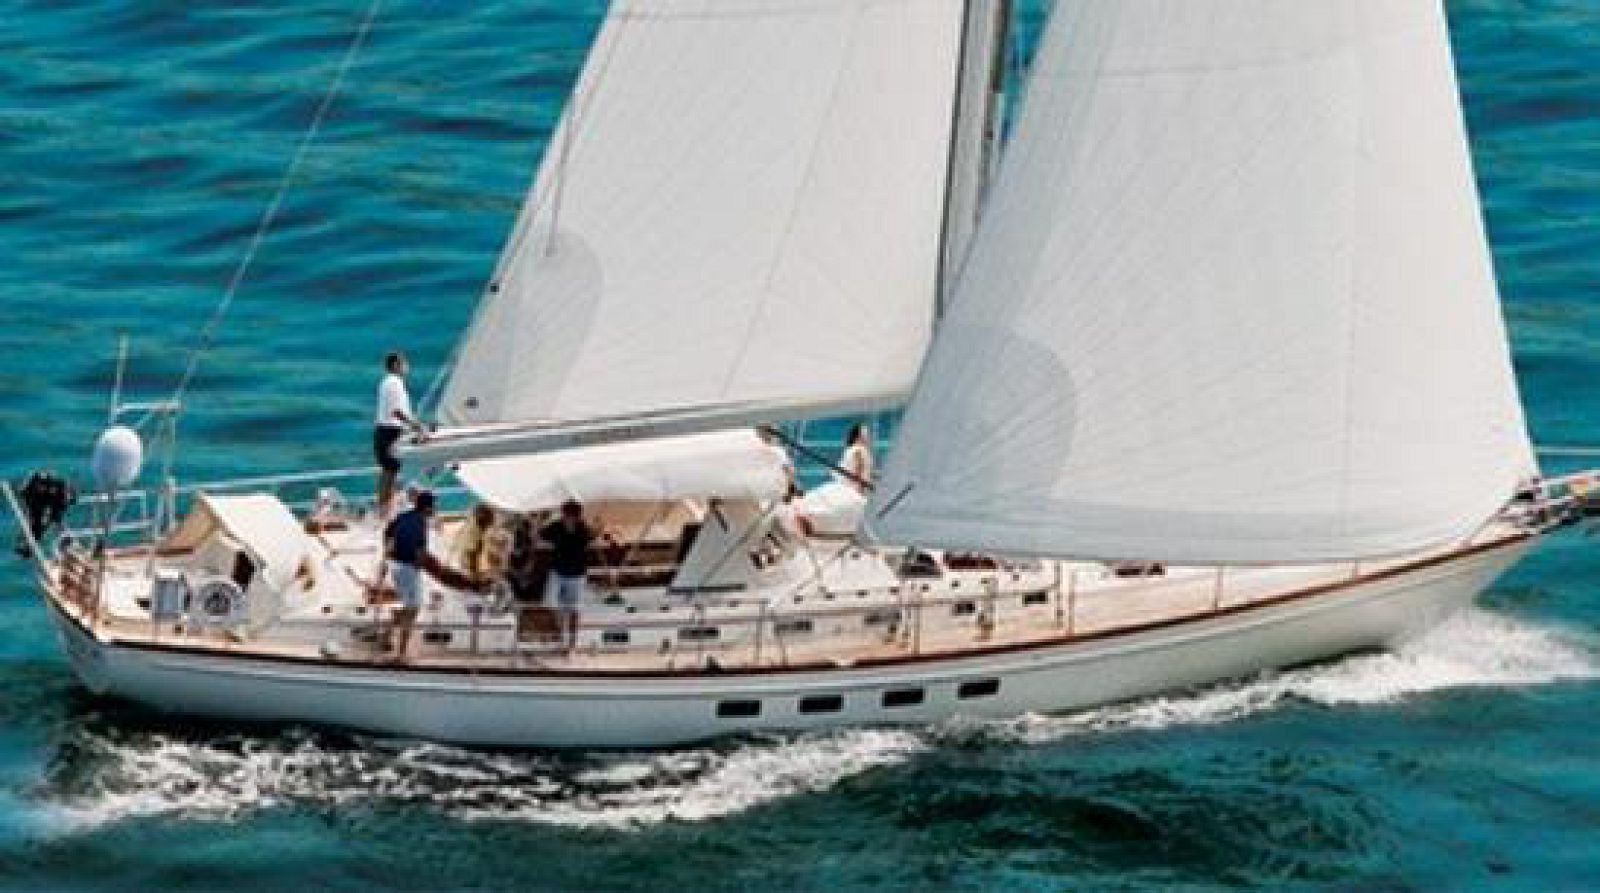 Best 55ish Foot Sailboat Page 2 Cruisers Amp Sailing Forums